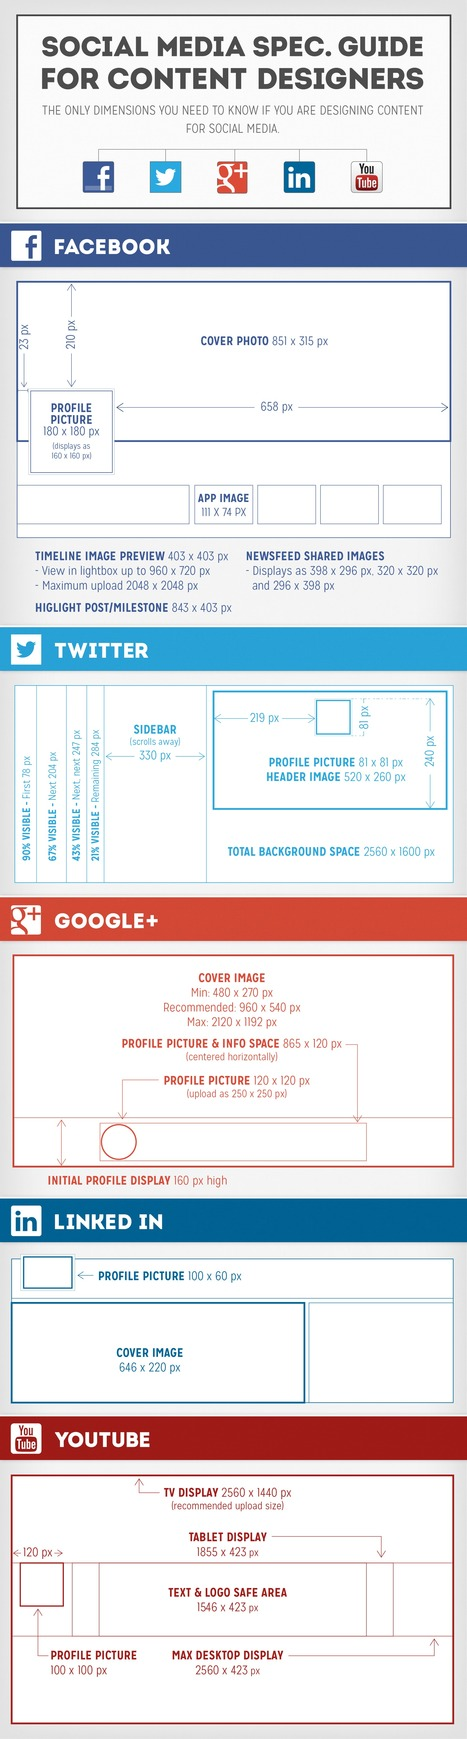 Social Media Image Size Guide [INFOGRAPHIC] | Wepyirang | Scoop.it